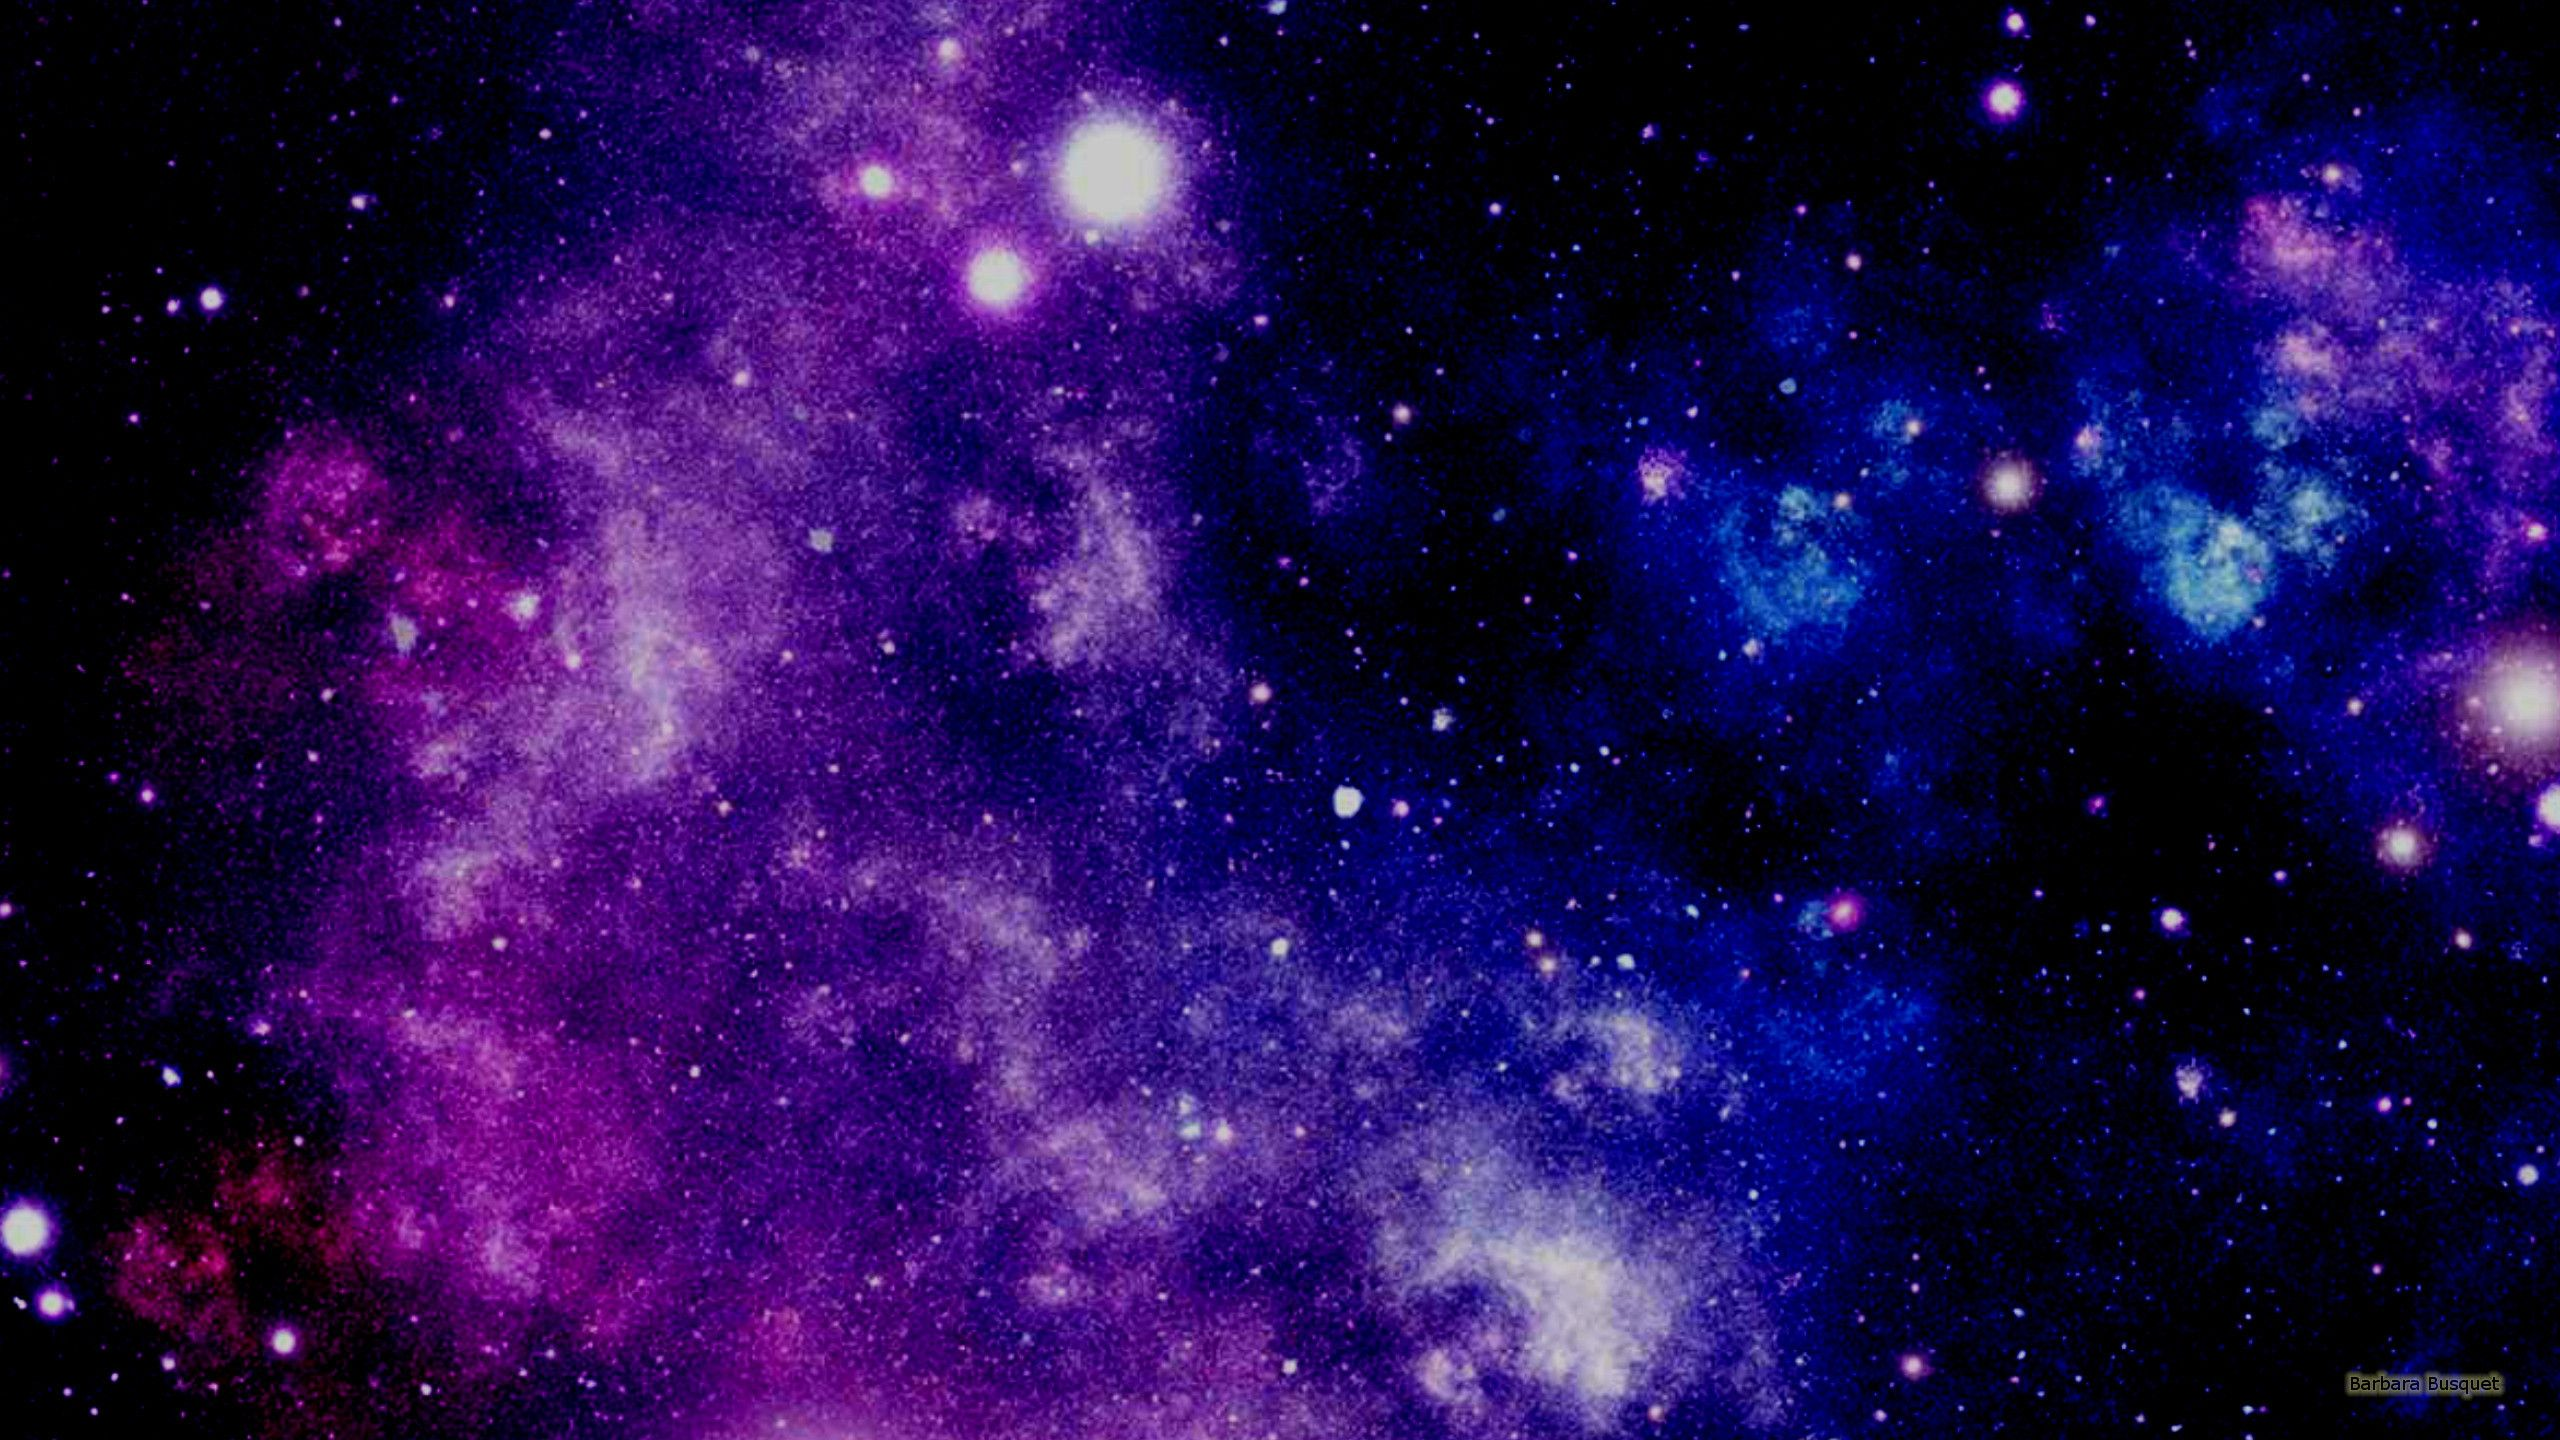 Dark Blue Galaxy Wallpapers Top Free Dark Blue Galaxy Backgrounds Wallpaperaccess